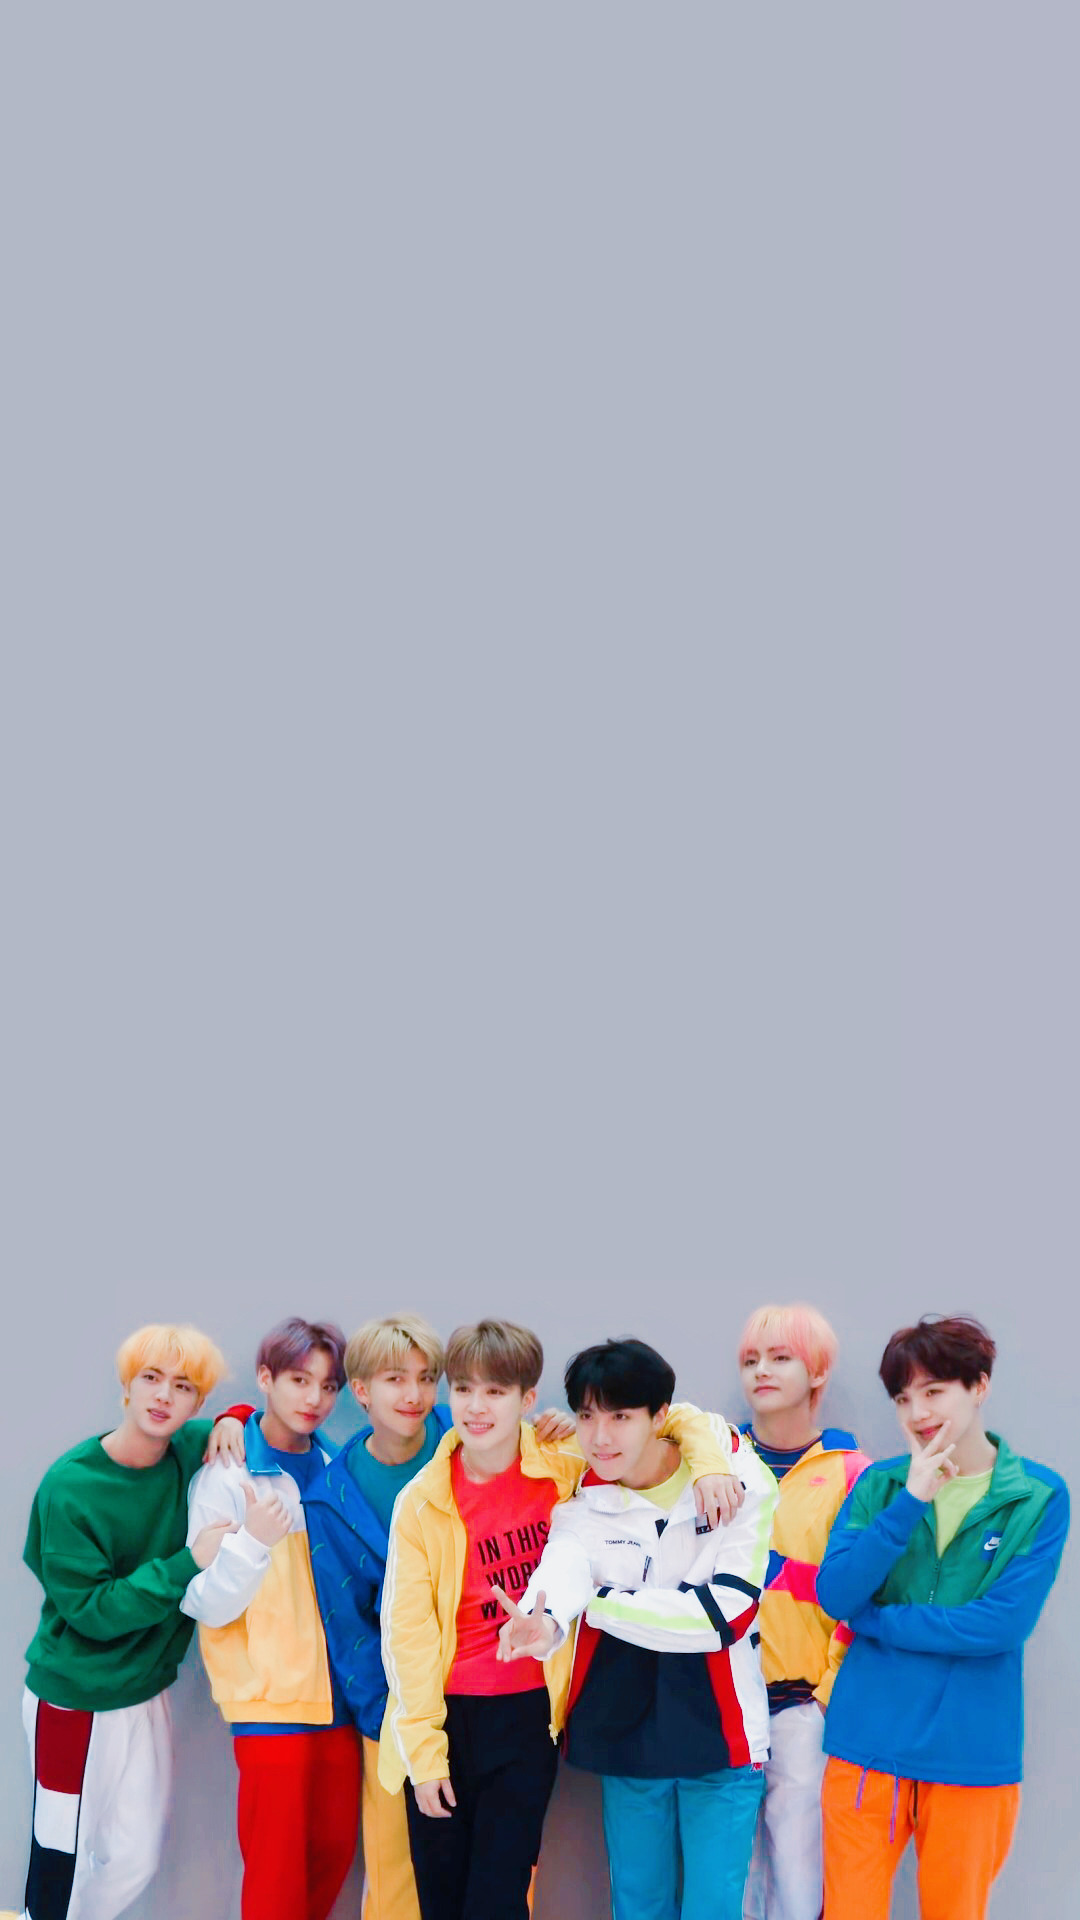 BTS Wallpaper For iPhone 6